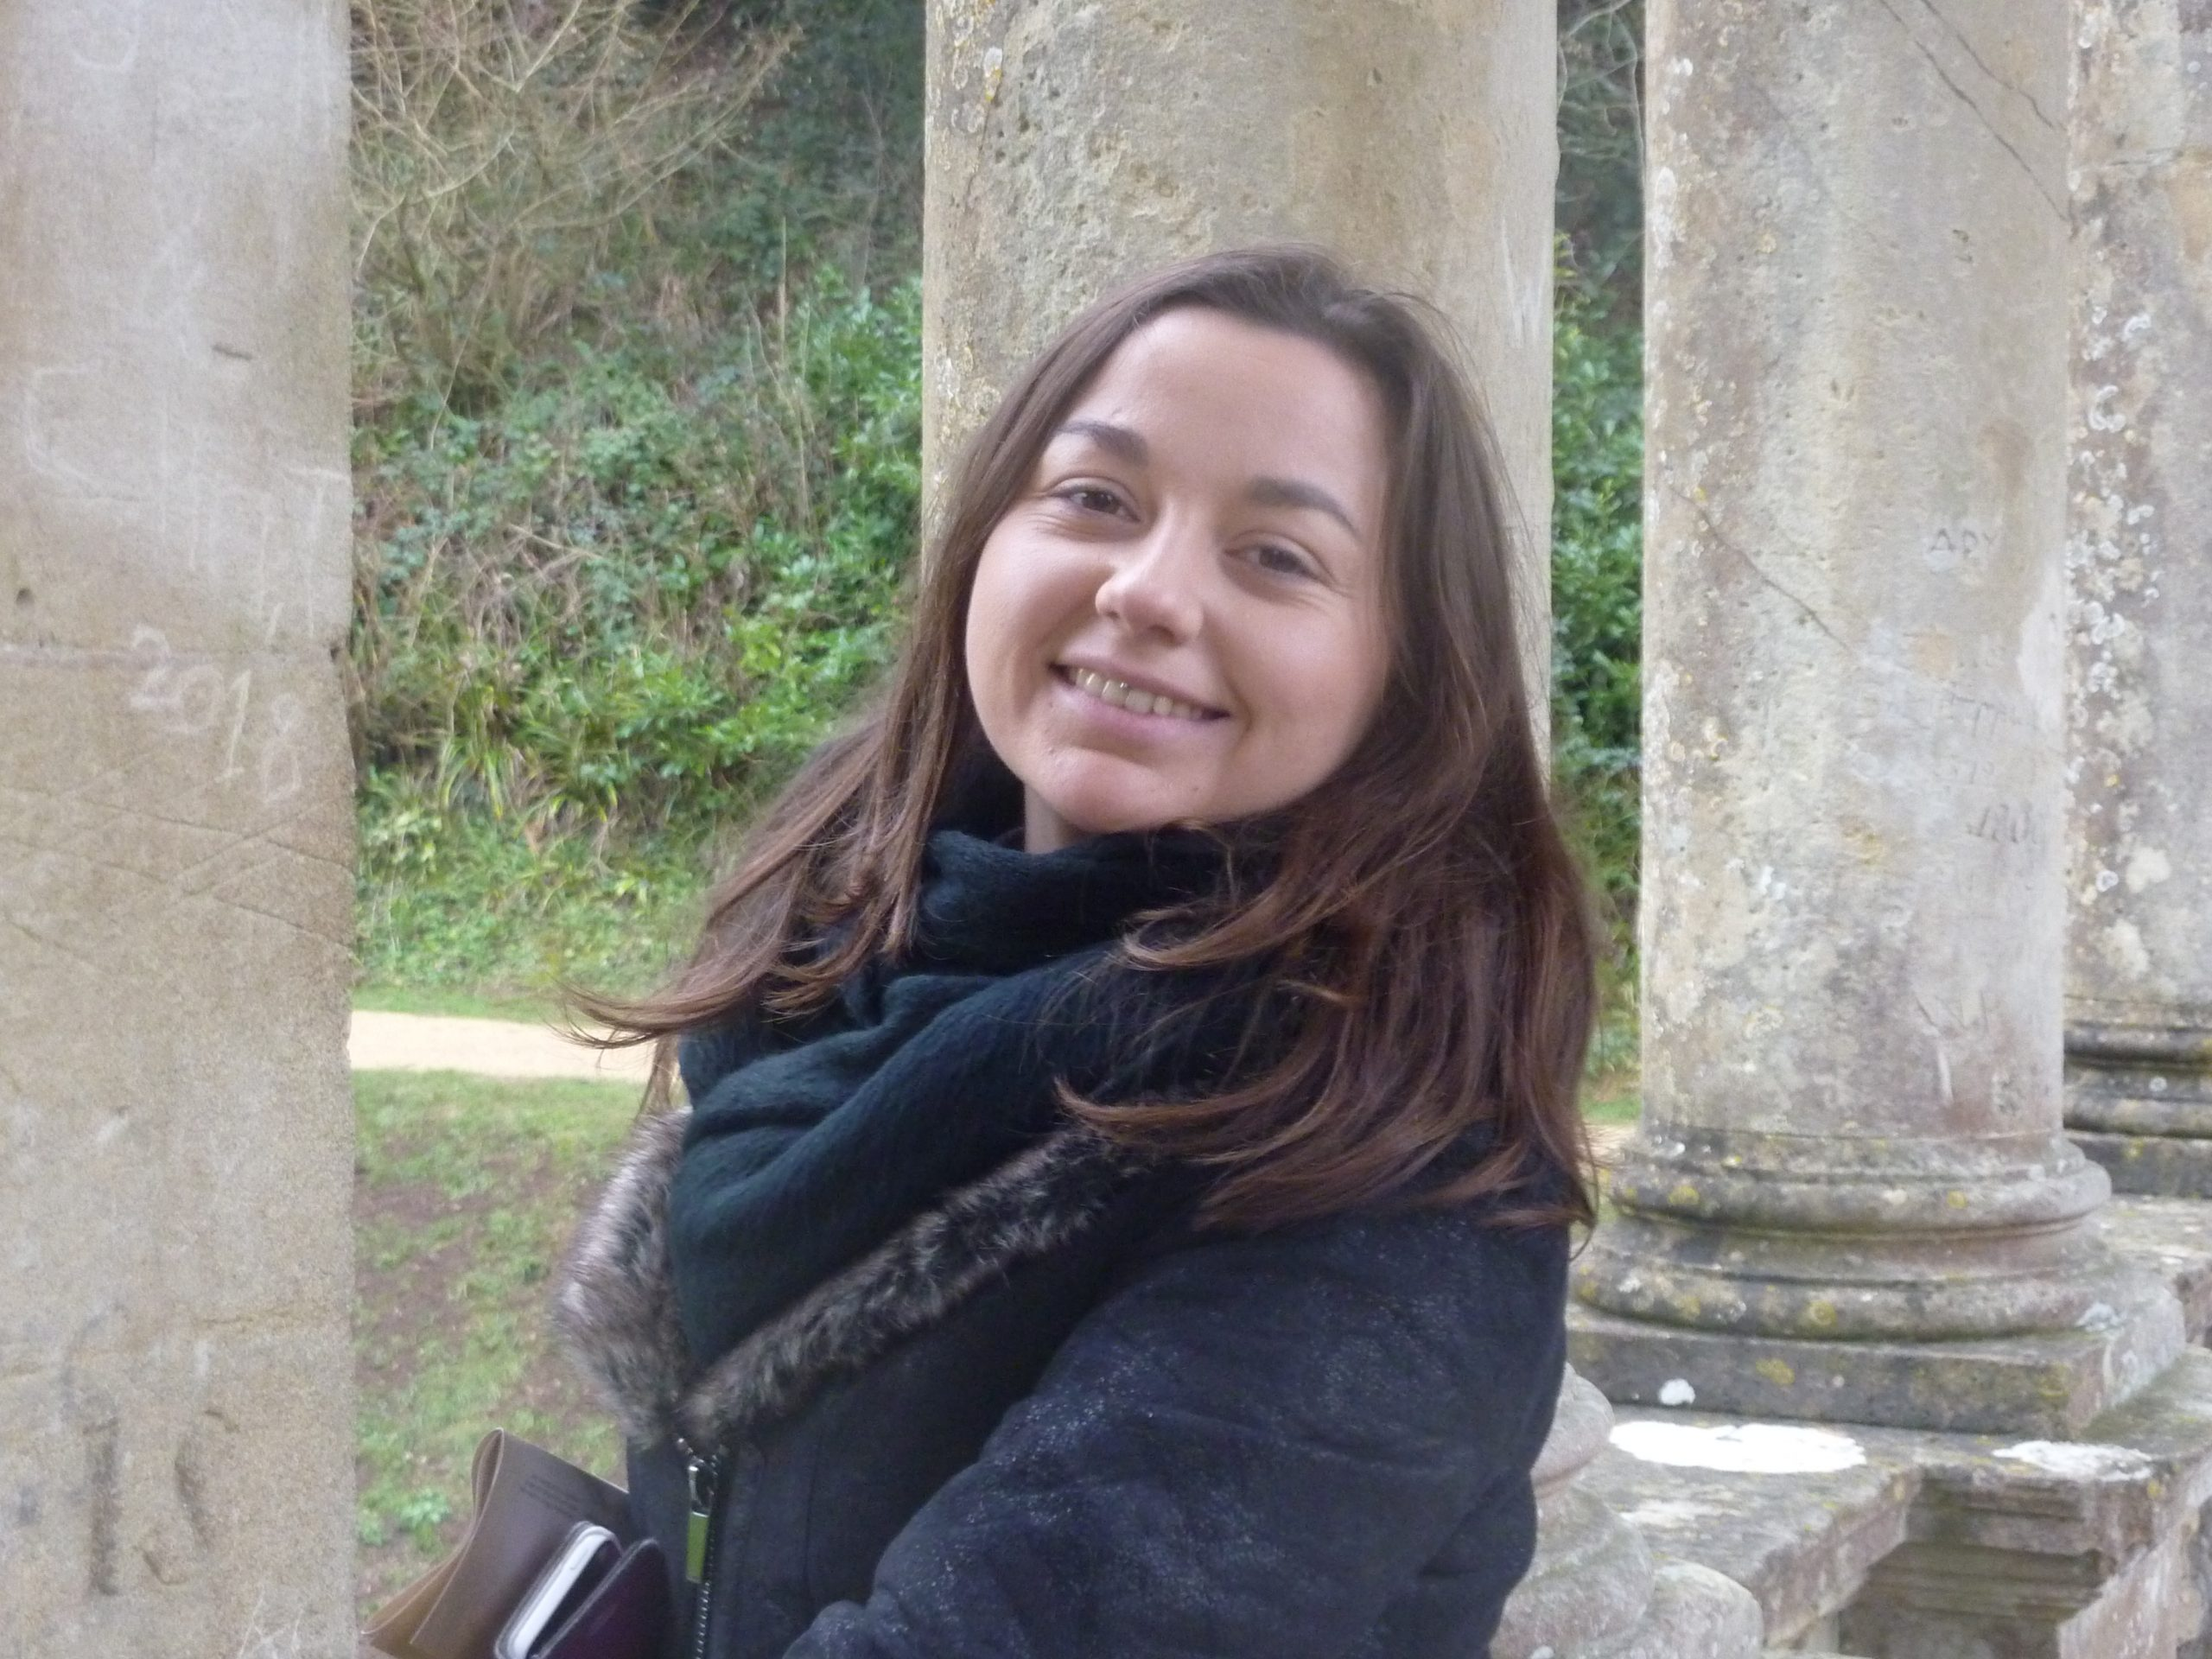 Giorgia, Jan 2019, Prior Park 1